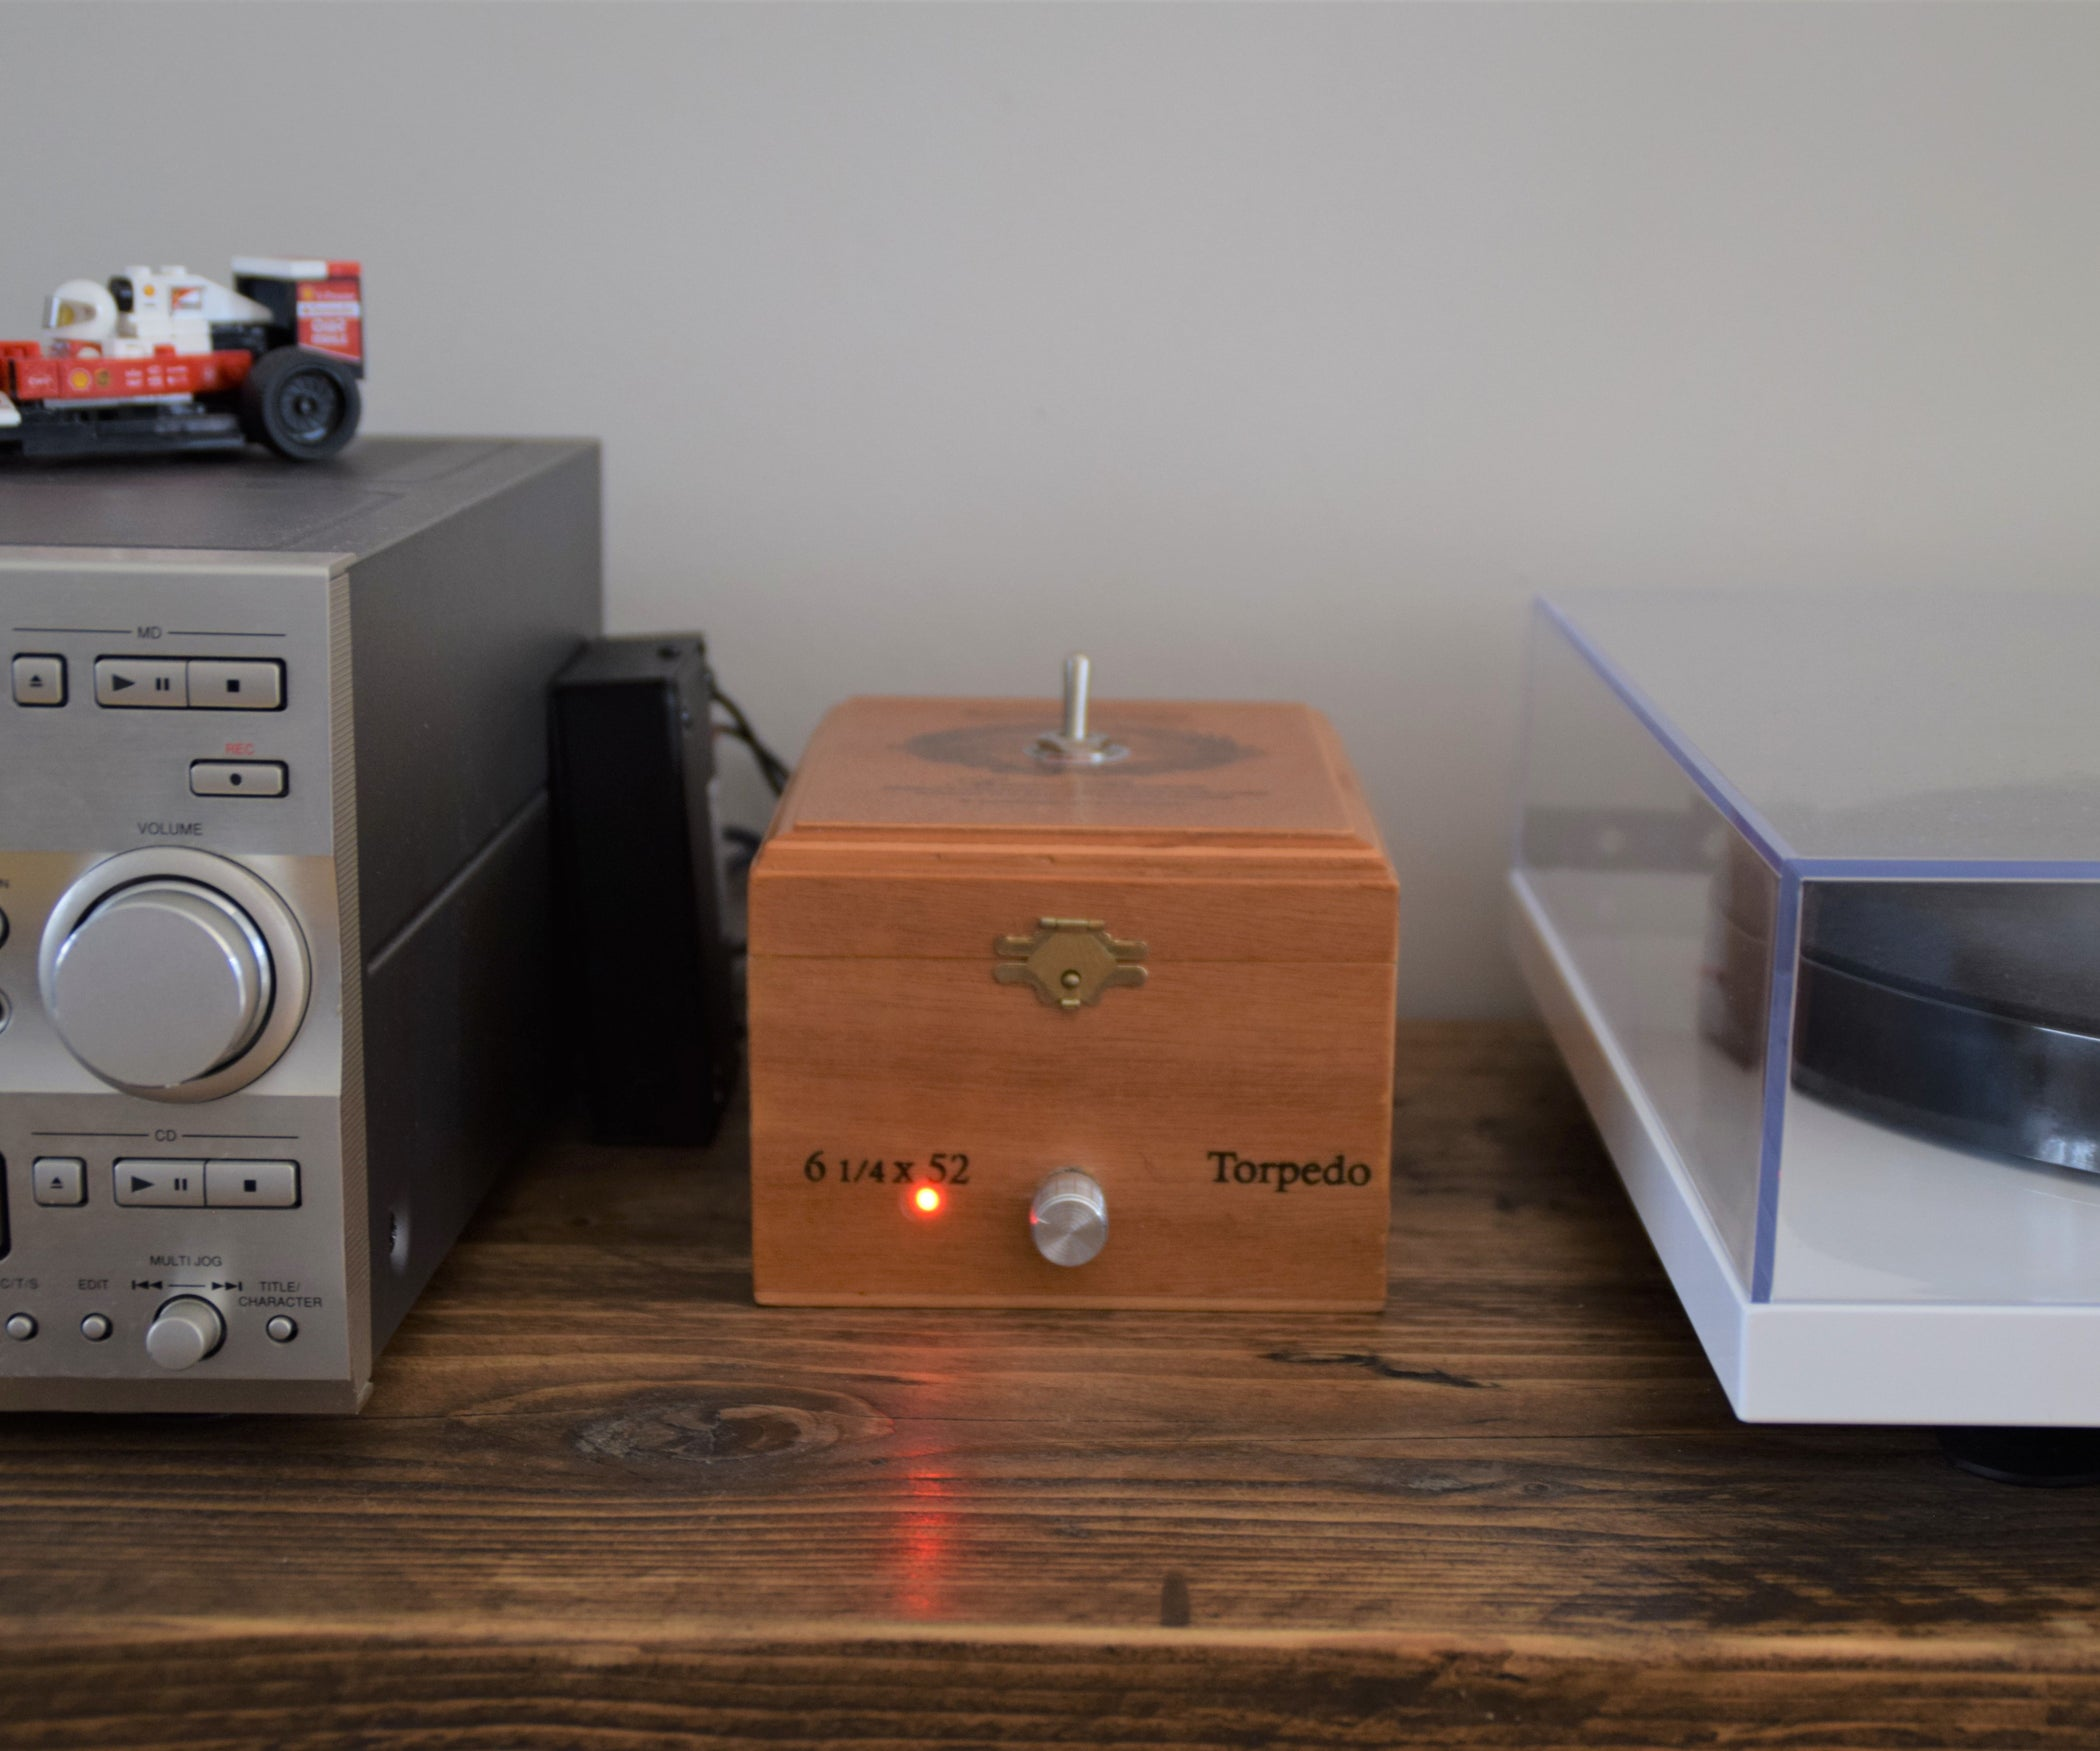 Bluetooth Amp Isolation Switch Two Amps Share A Pair Of Speakers 2 Way Phono Box 14 Steps With Pictures